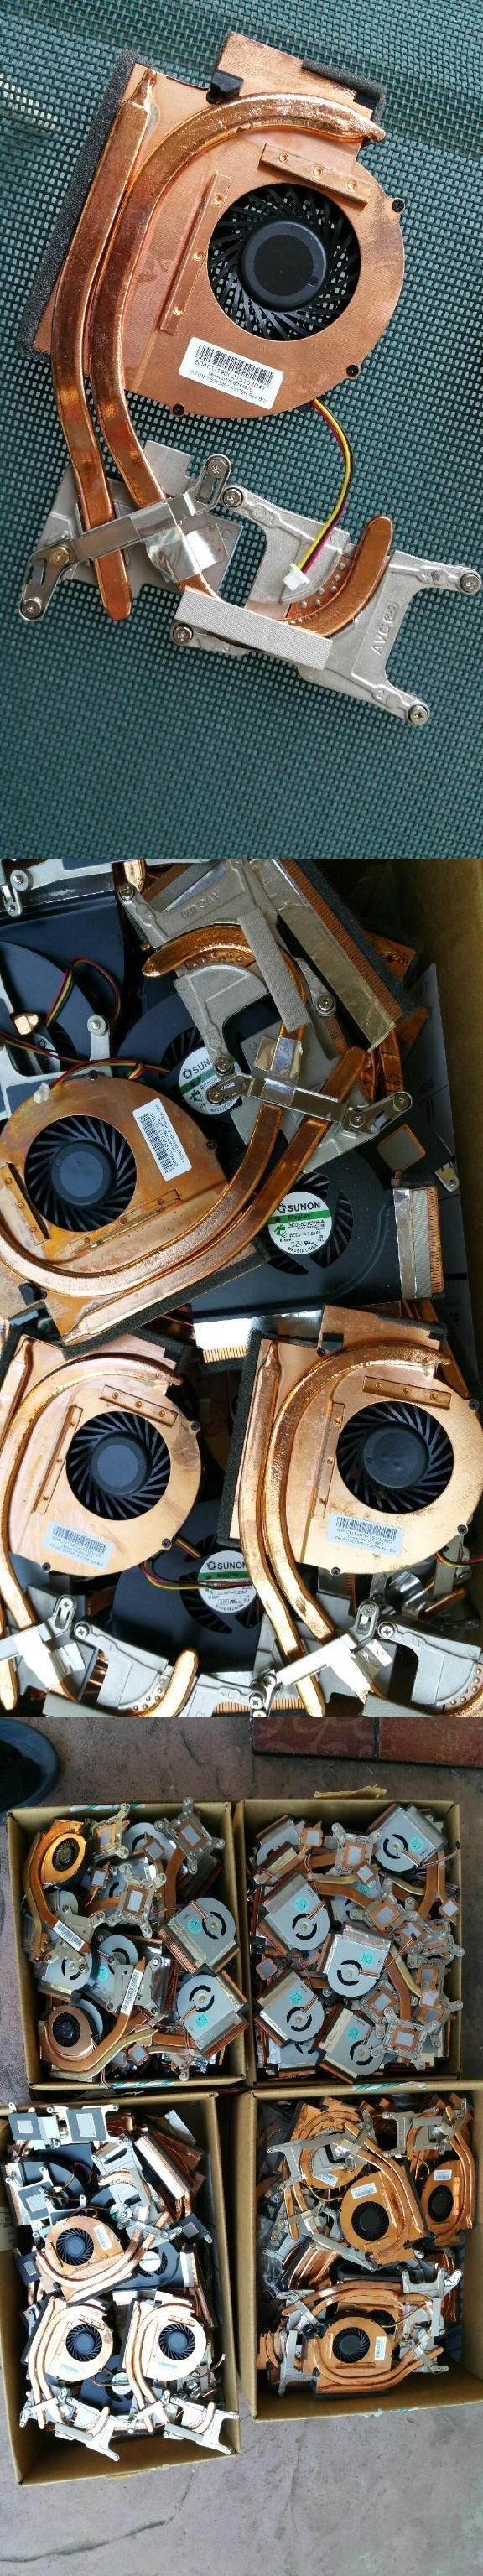 CPU Fans and Heat Sinks 131486: New Oem Lenovo Thinkpad T510